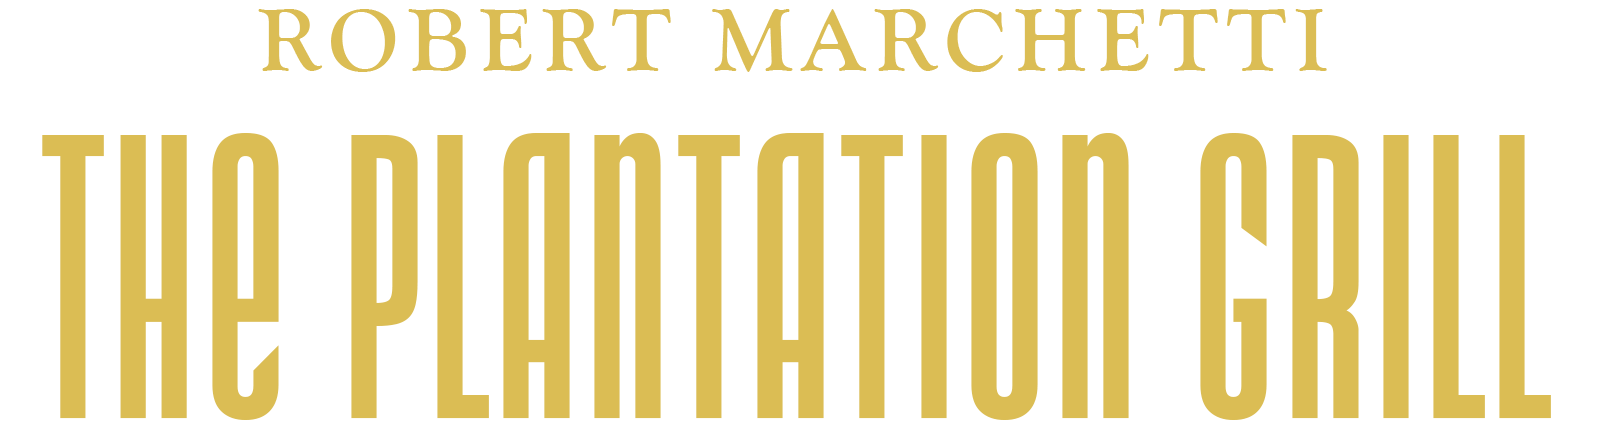 Robert Marchetti The Plantation Grill